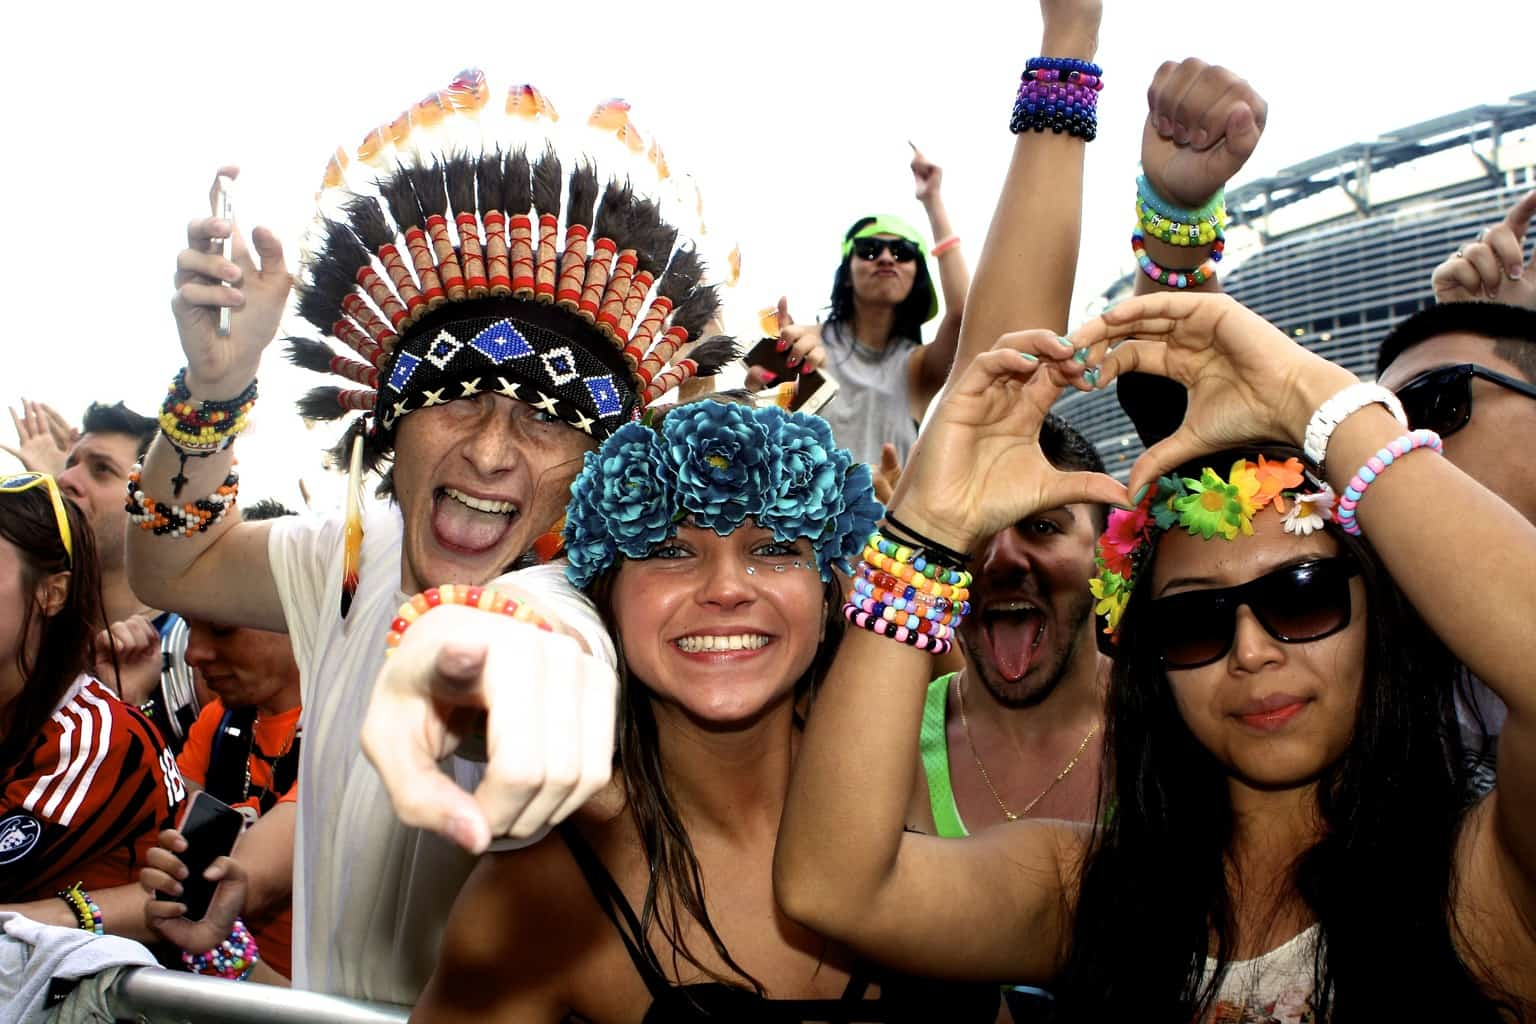 The Top 10 Craziest Moments Of Edc Ny 2014